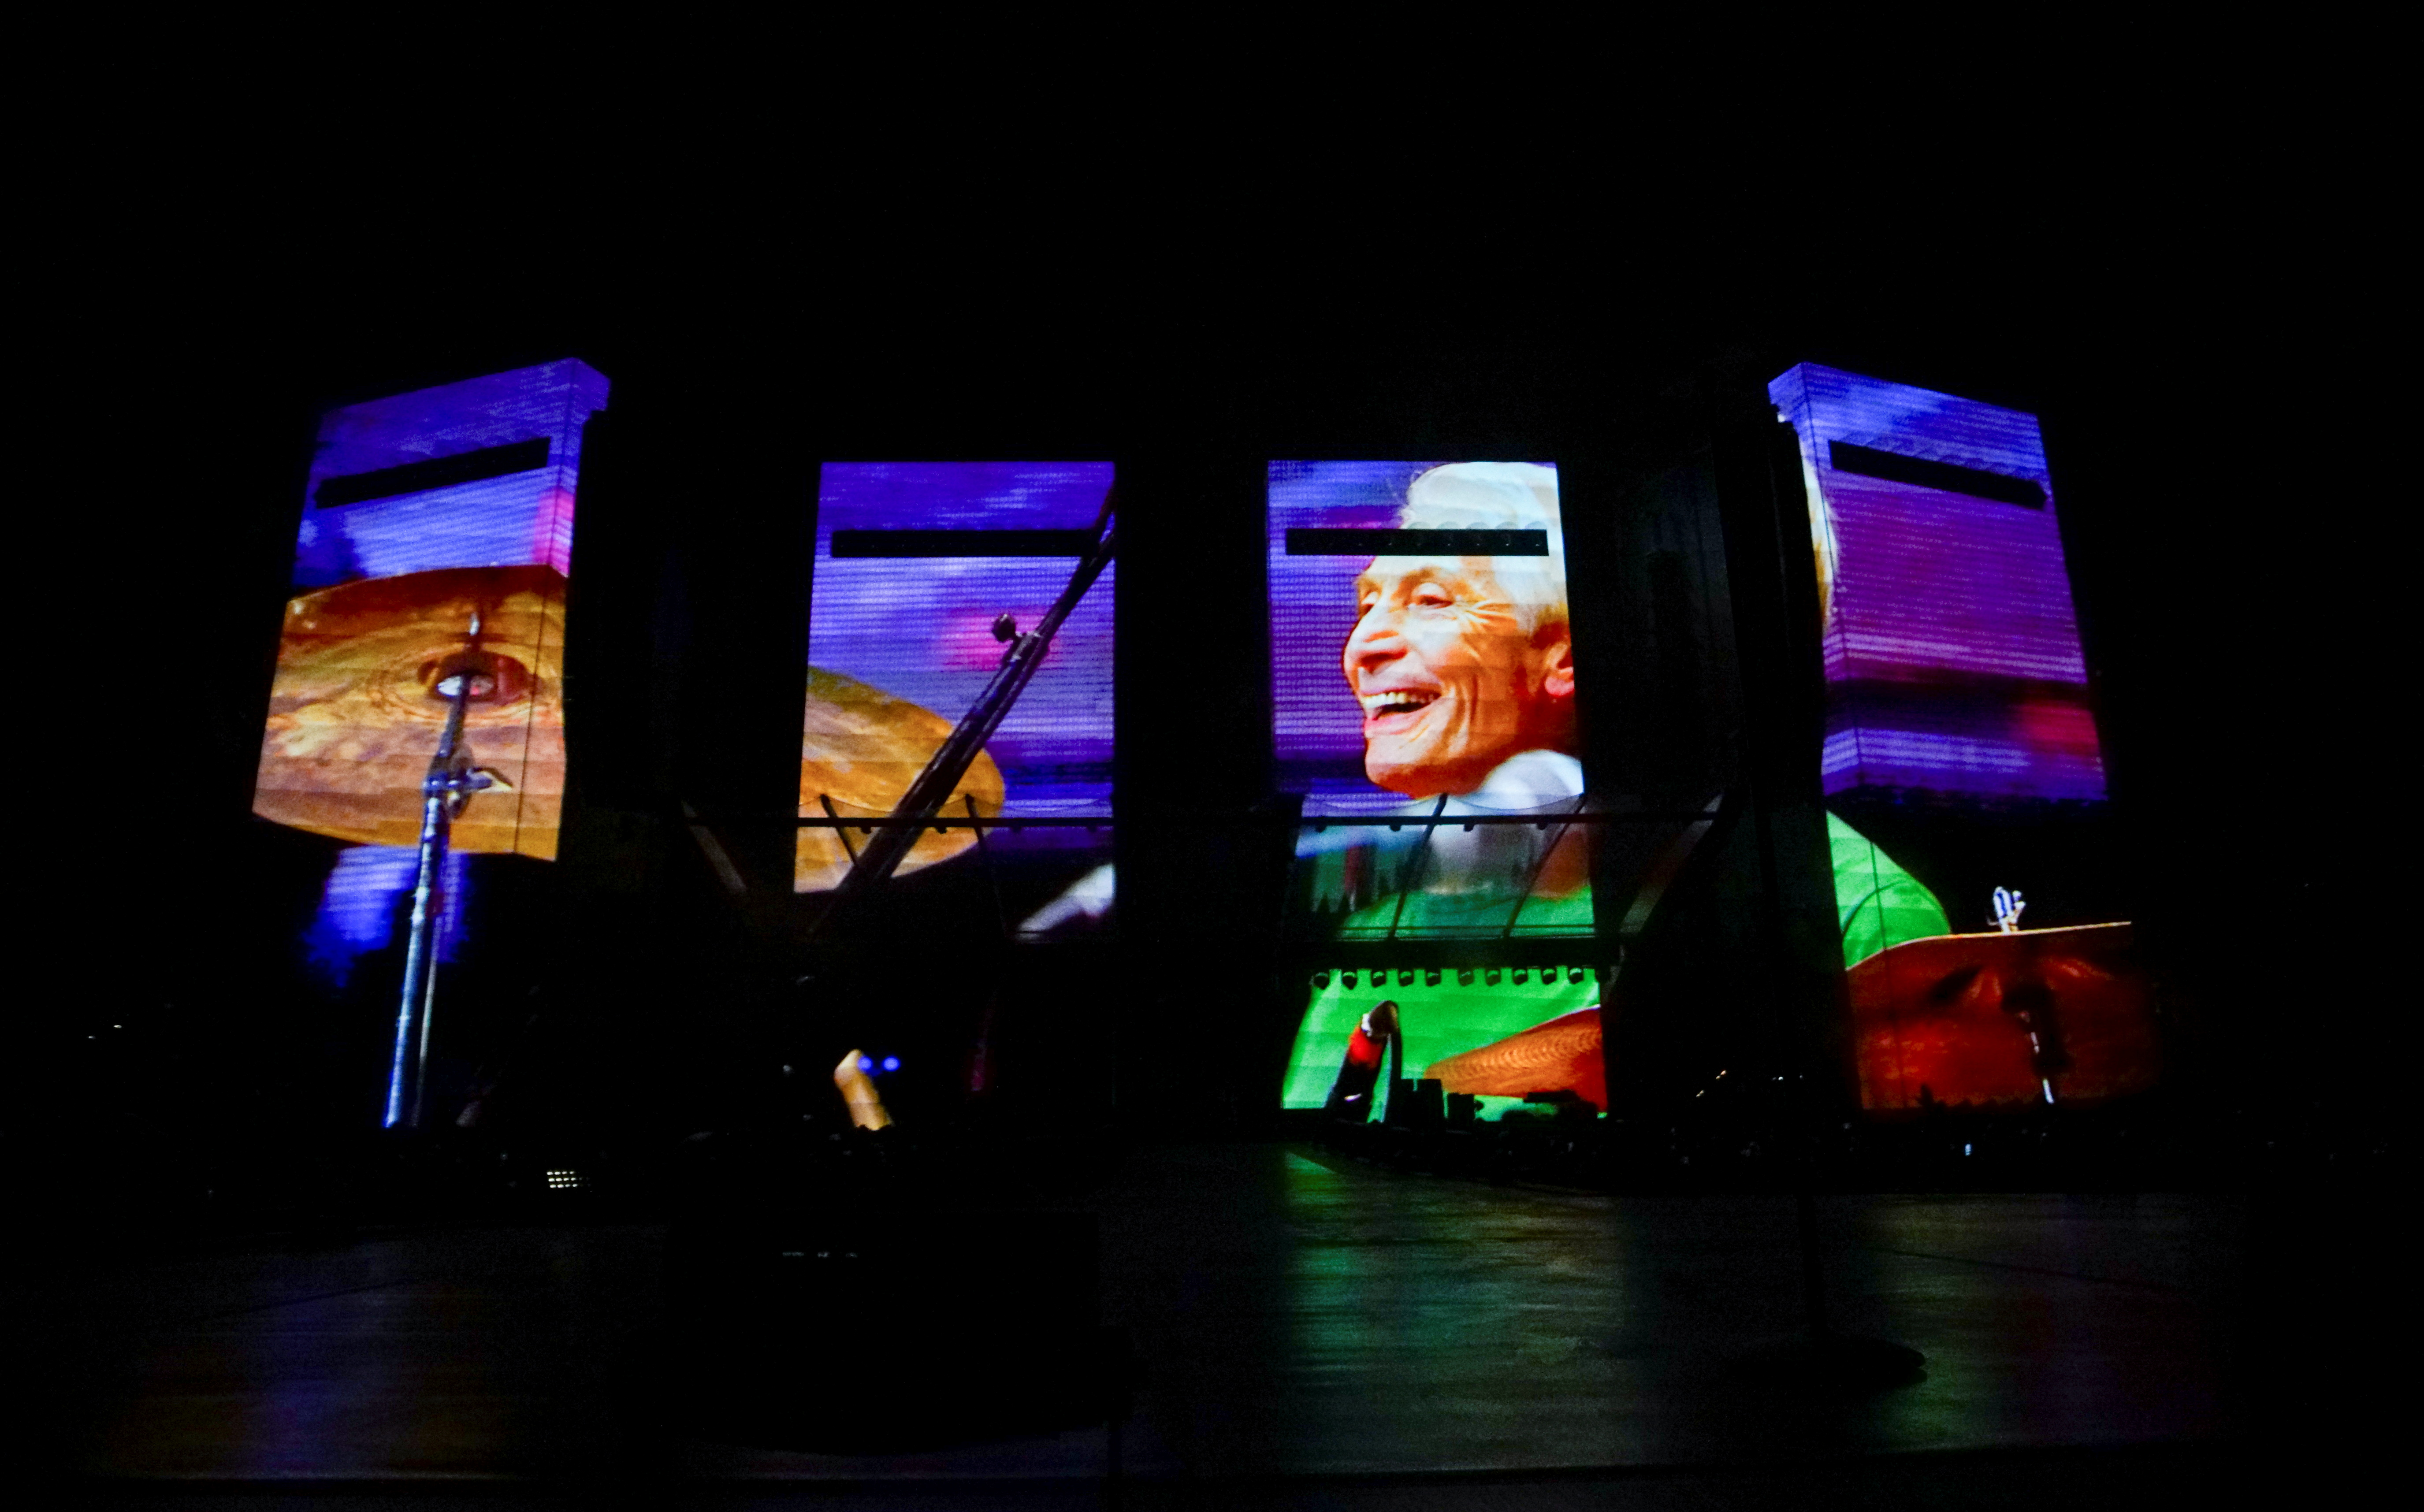 A tribute to drummer Charlie Watts is played at the kick off The Rolling Stones' U.S. tour, a month after his death, in St. Louis, Missouri, U.S. September 26, 2021. REUTERS/Lawrence Bryant